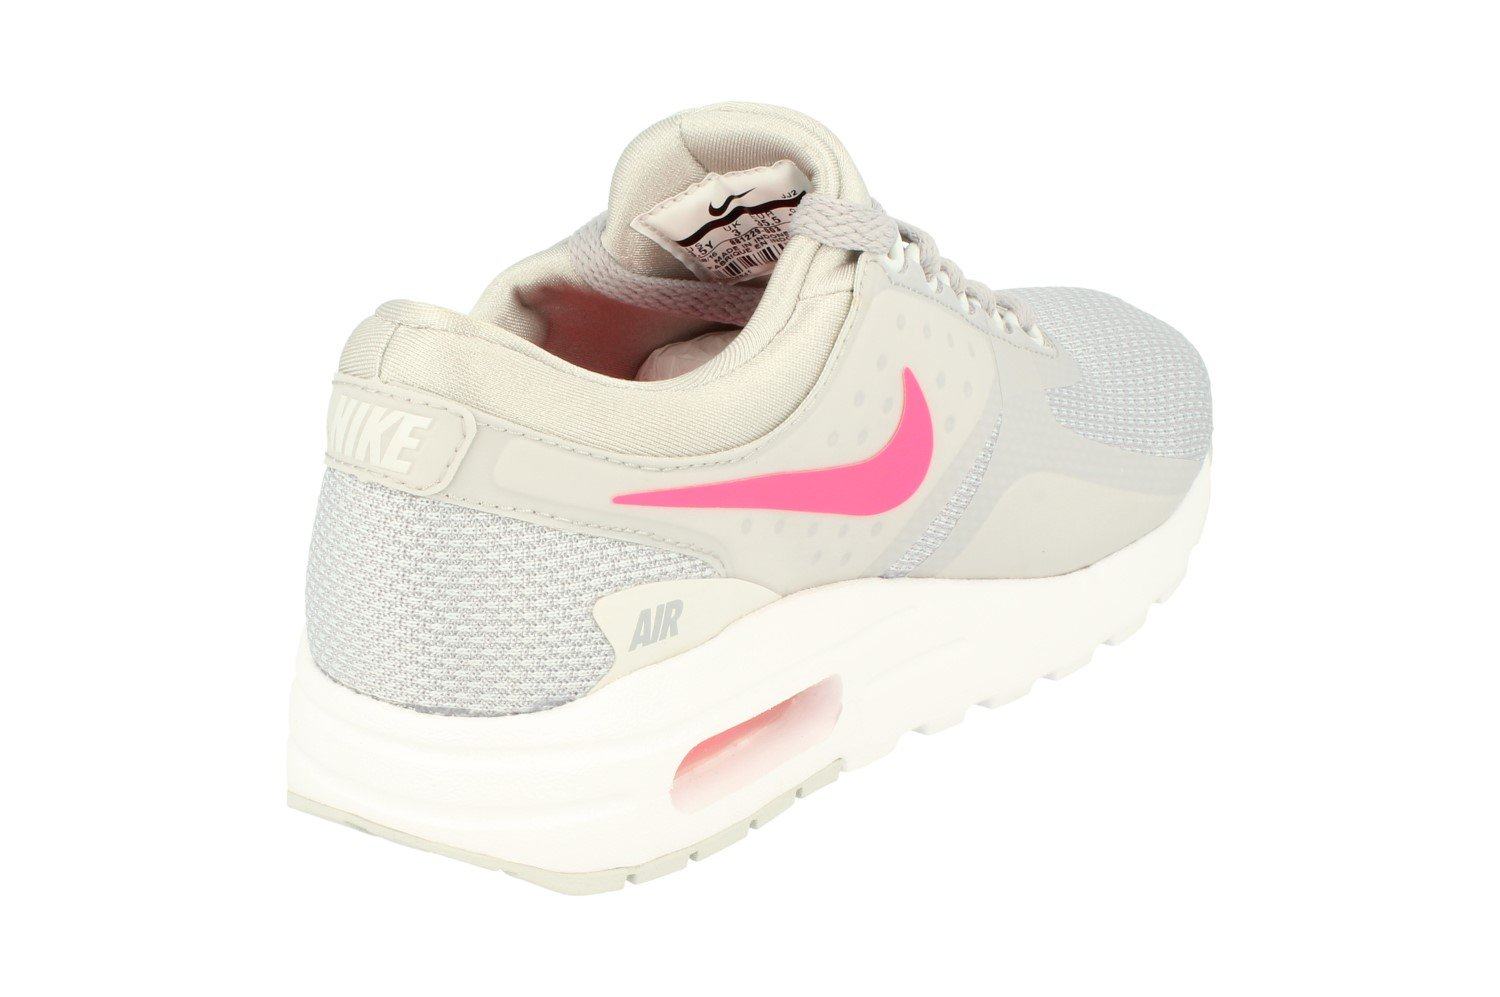 Nike Grade-School Air Max Zero Essential Wolf Grey/Racer Pink-White 881229-003 Shoe 3.5Y M US Youth by Nike (Image #3)